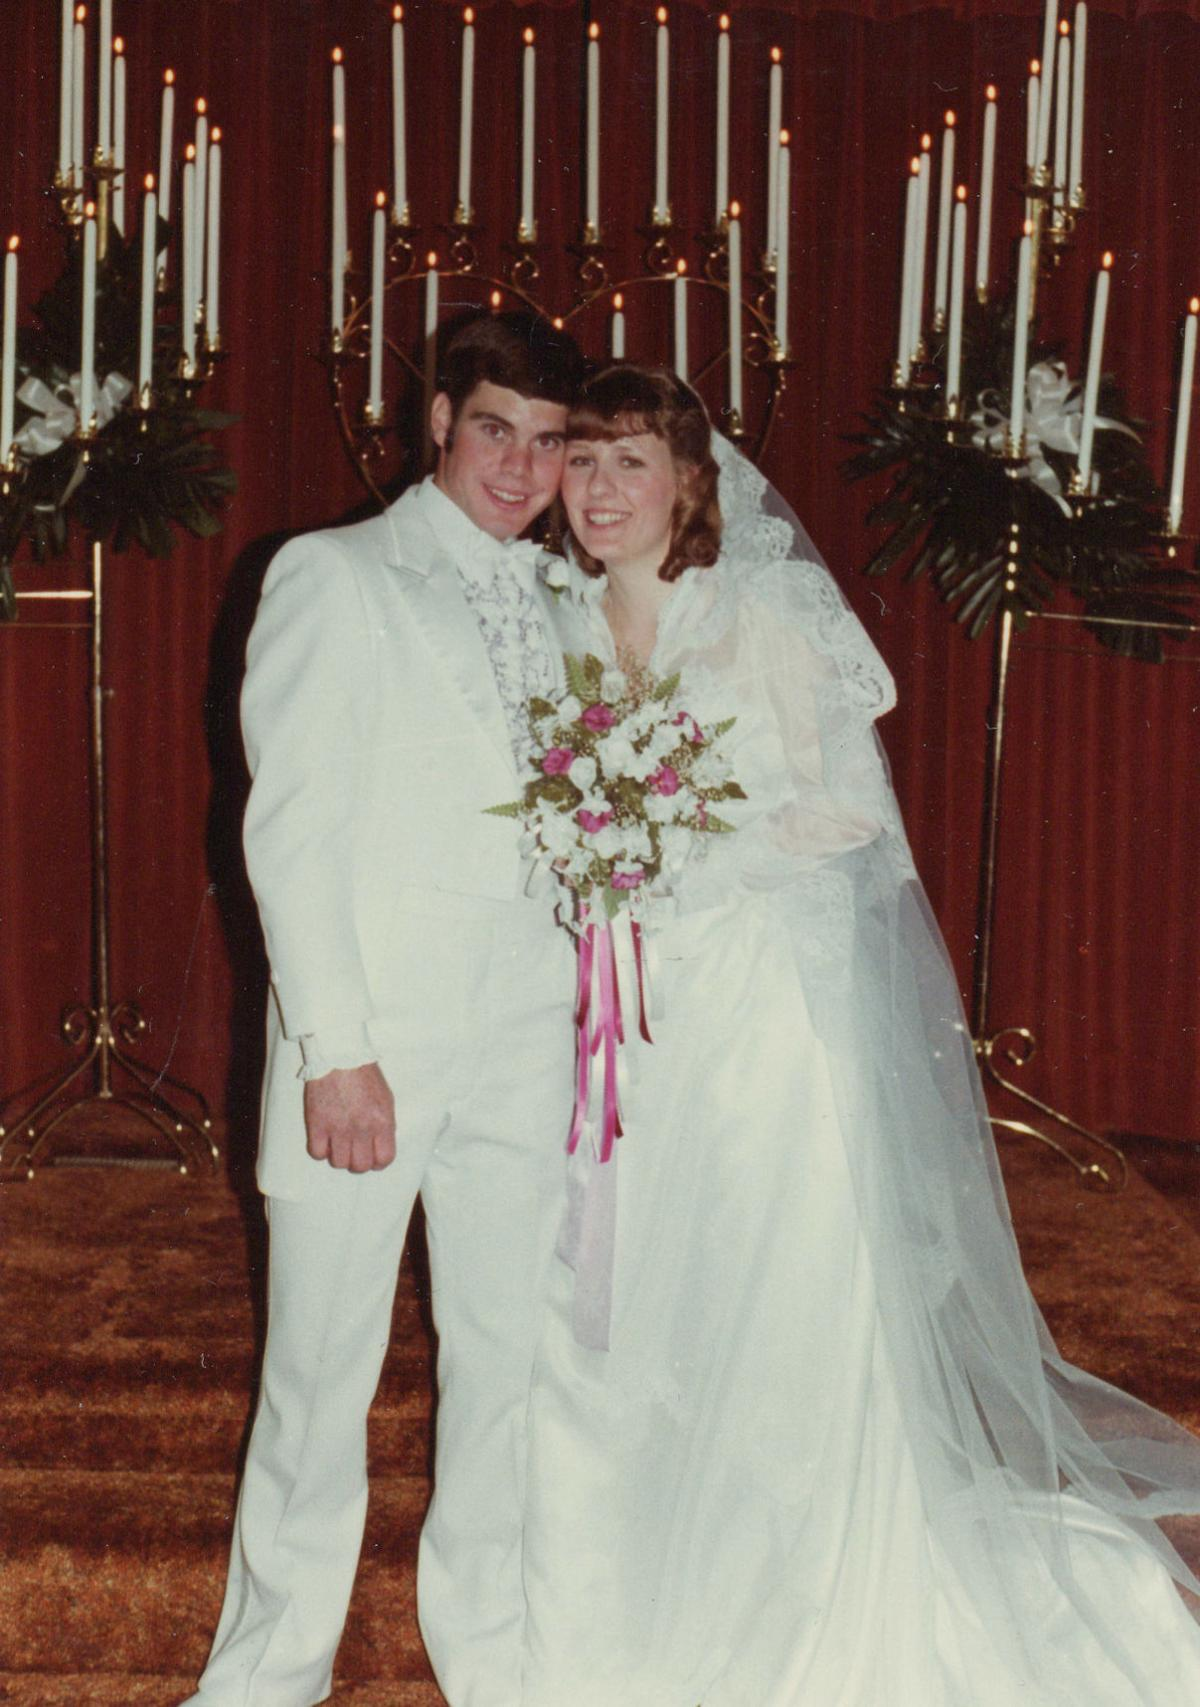 Nelsons celebrate 40 years of marriage